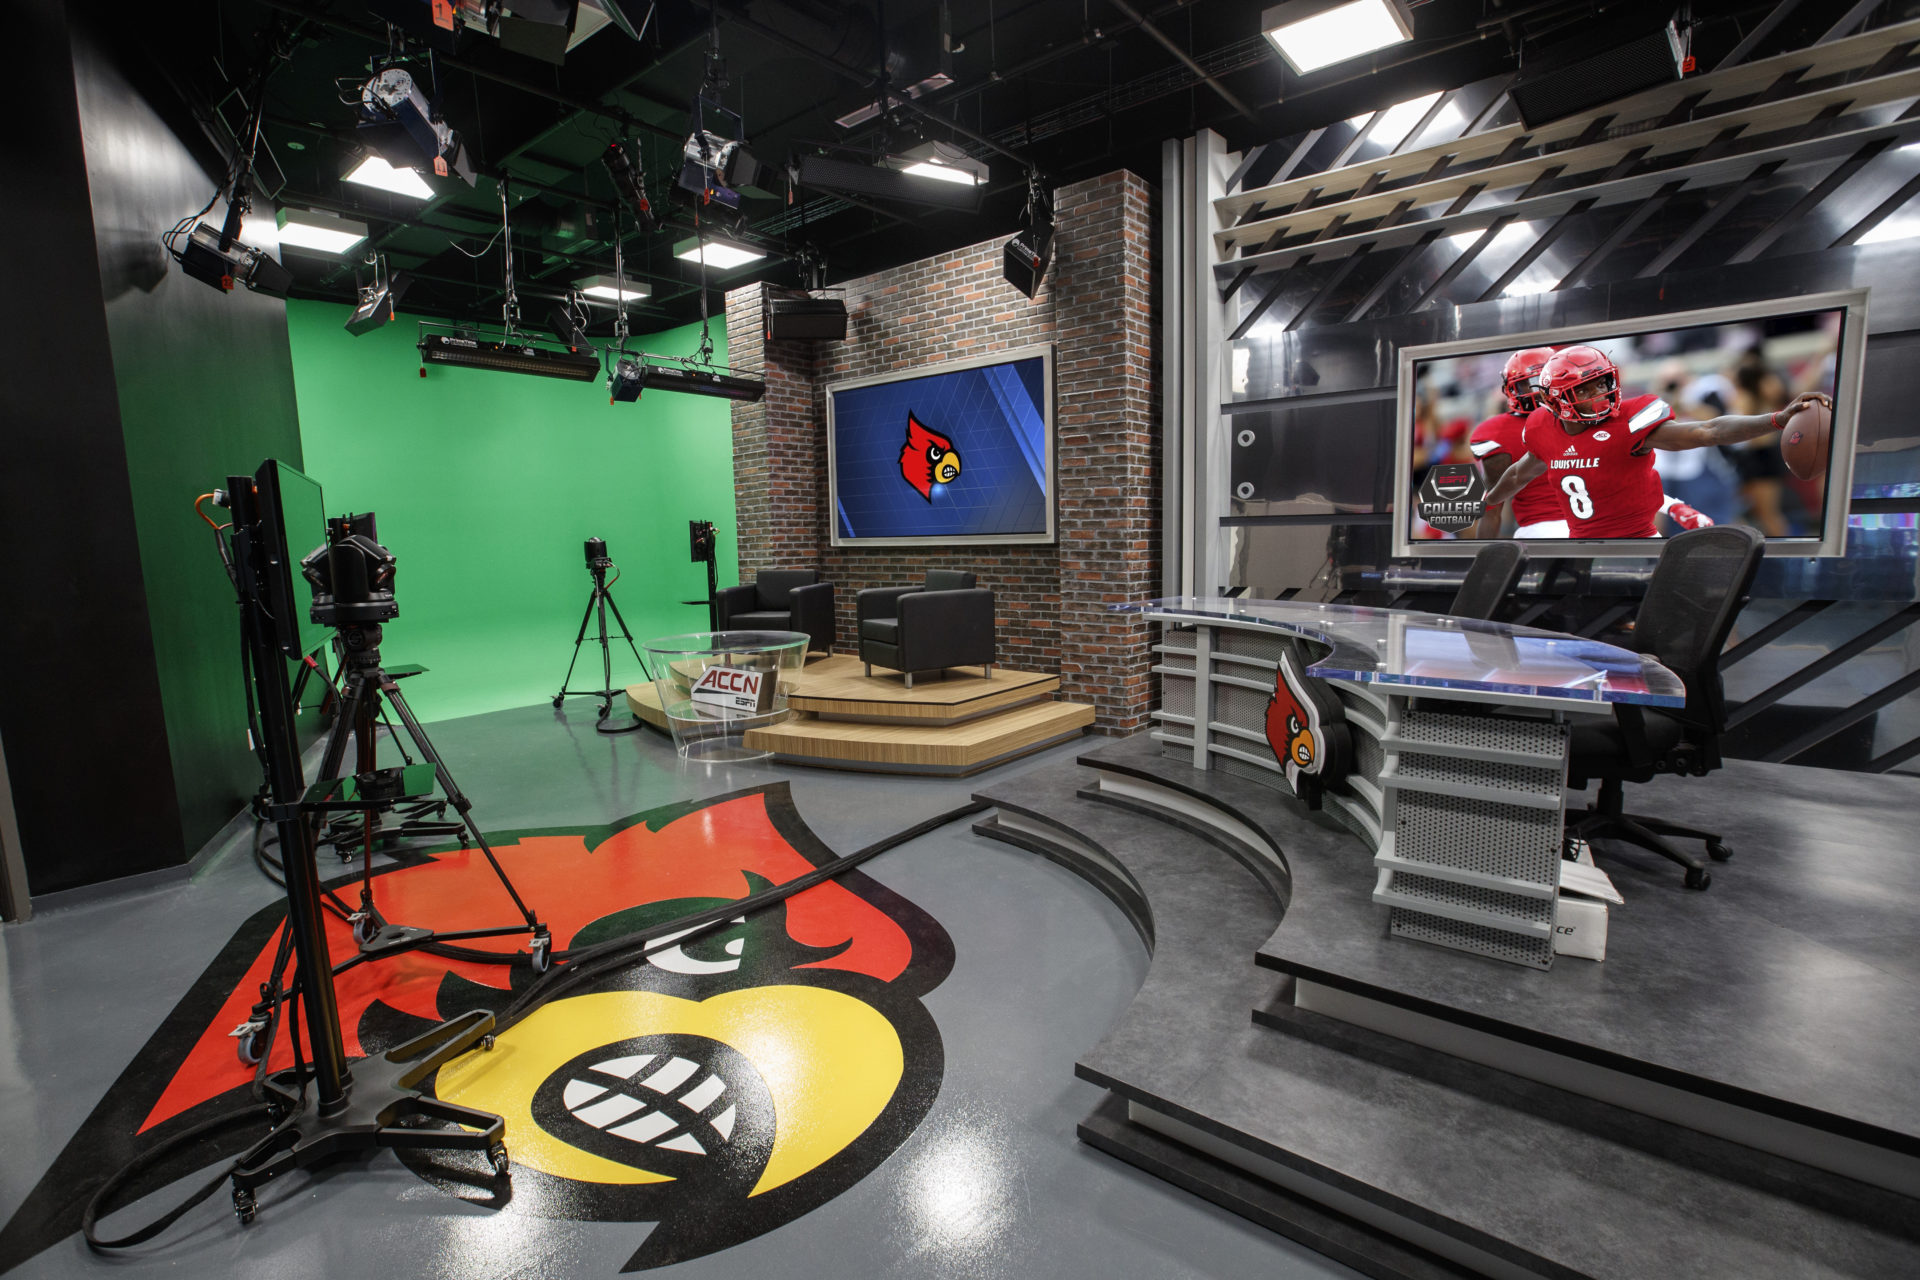 ACC, ACC Network, AJP, Anthony James Partners, AV Consulting, Broadcast, Broadcast Studio, College Sports, Distributed TV, edit suites, ESPN, production control room, Video Replay, University of Louisville, Cardinals